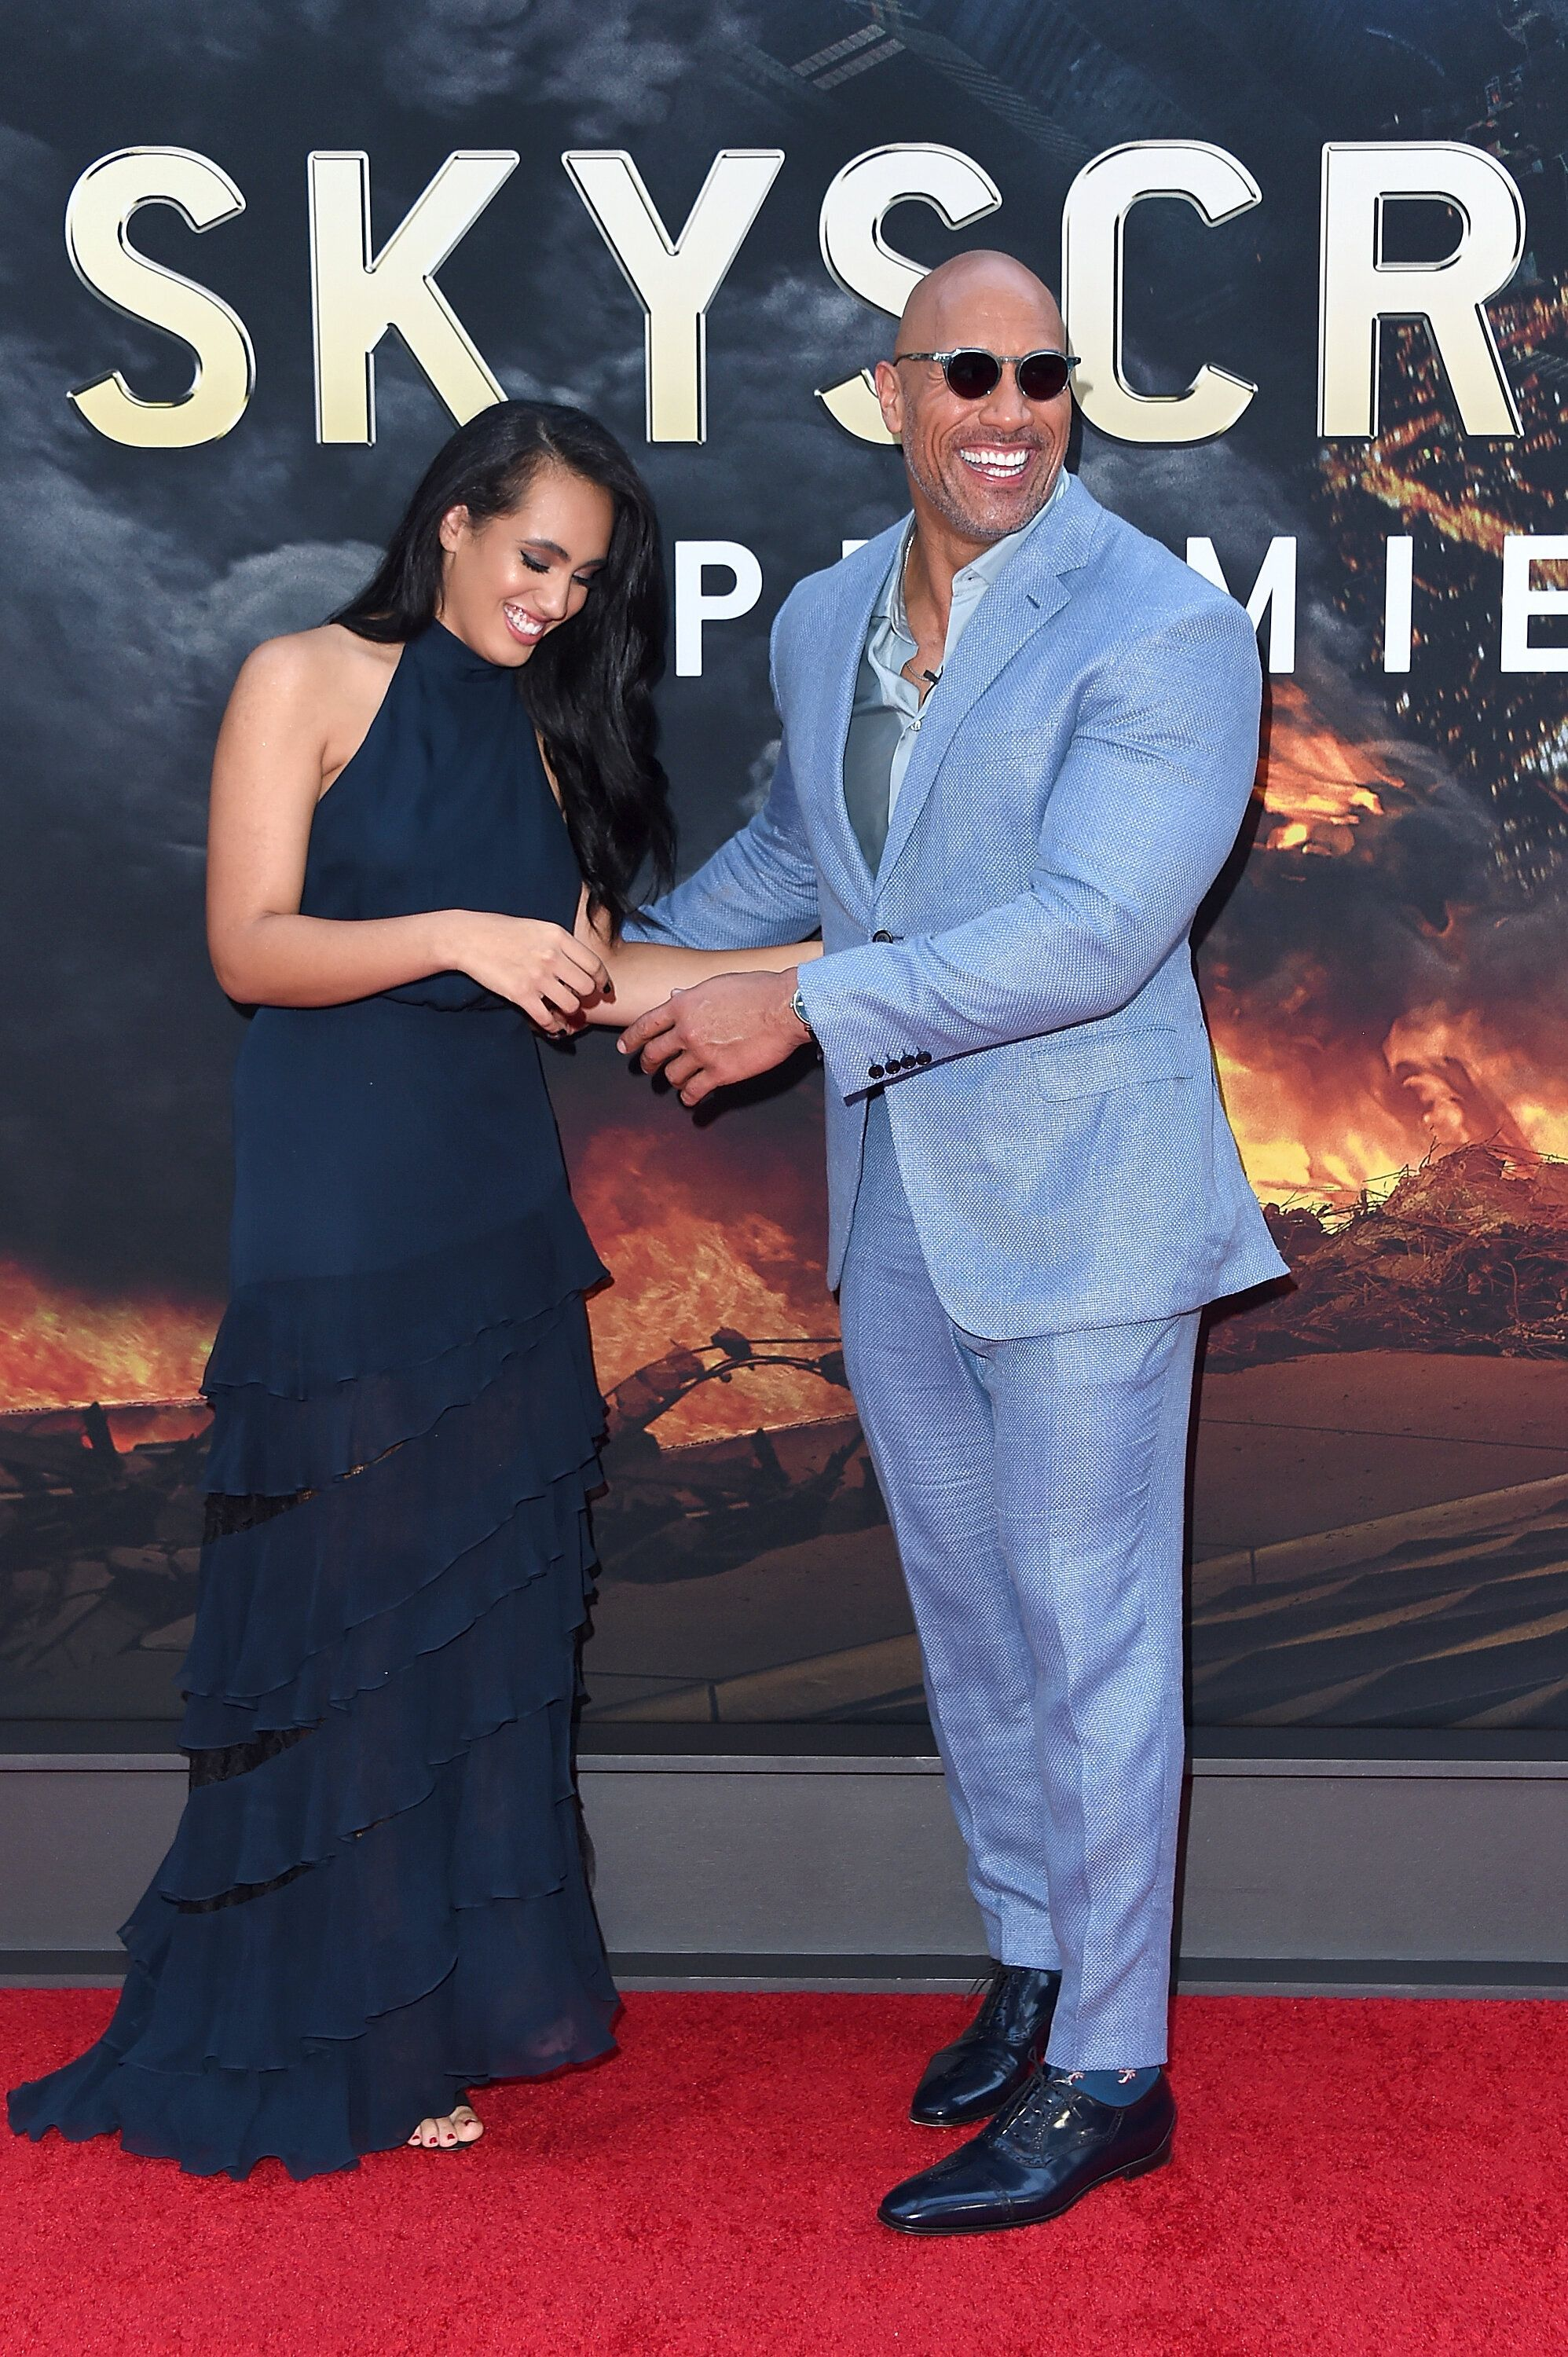 NEW YORK, NY - JULY 10:  Dwayne Johnson and his daughter Simone Garcia Johnson attend the 'Skyscraper' New York Premiere at AMC Loews Lincoln Square on July 10, 2018 in New York City.  (Photo by Michael Loccisano/Getty Images)